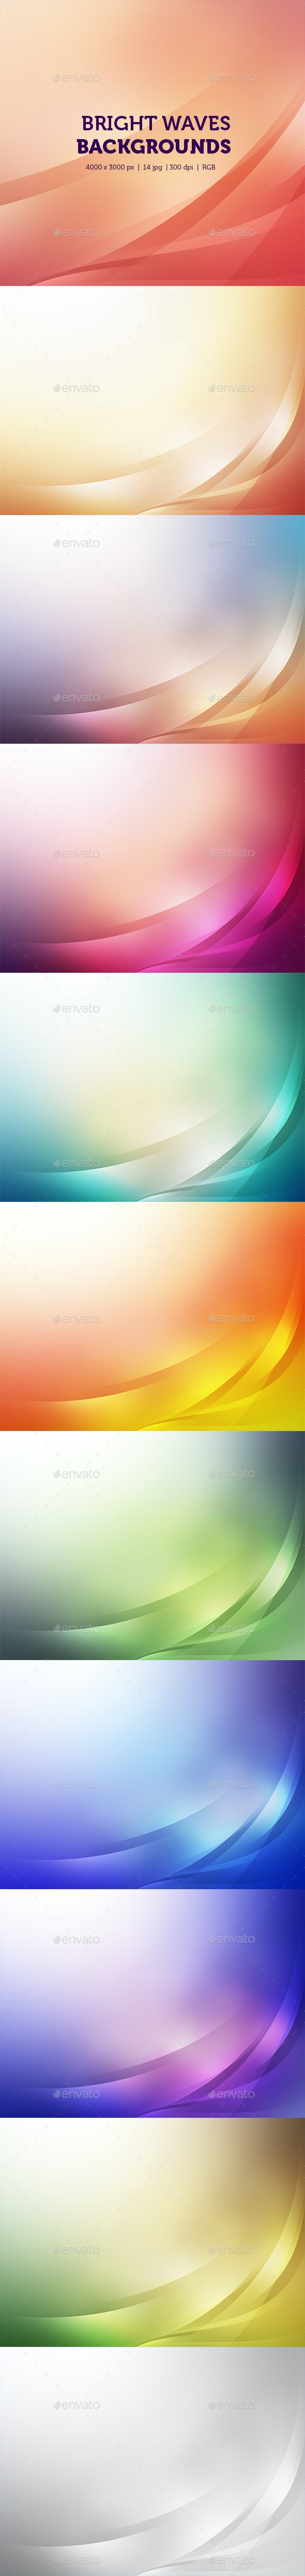 Bright Waves Backgrounds - Abstract Backgrounds